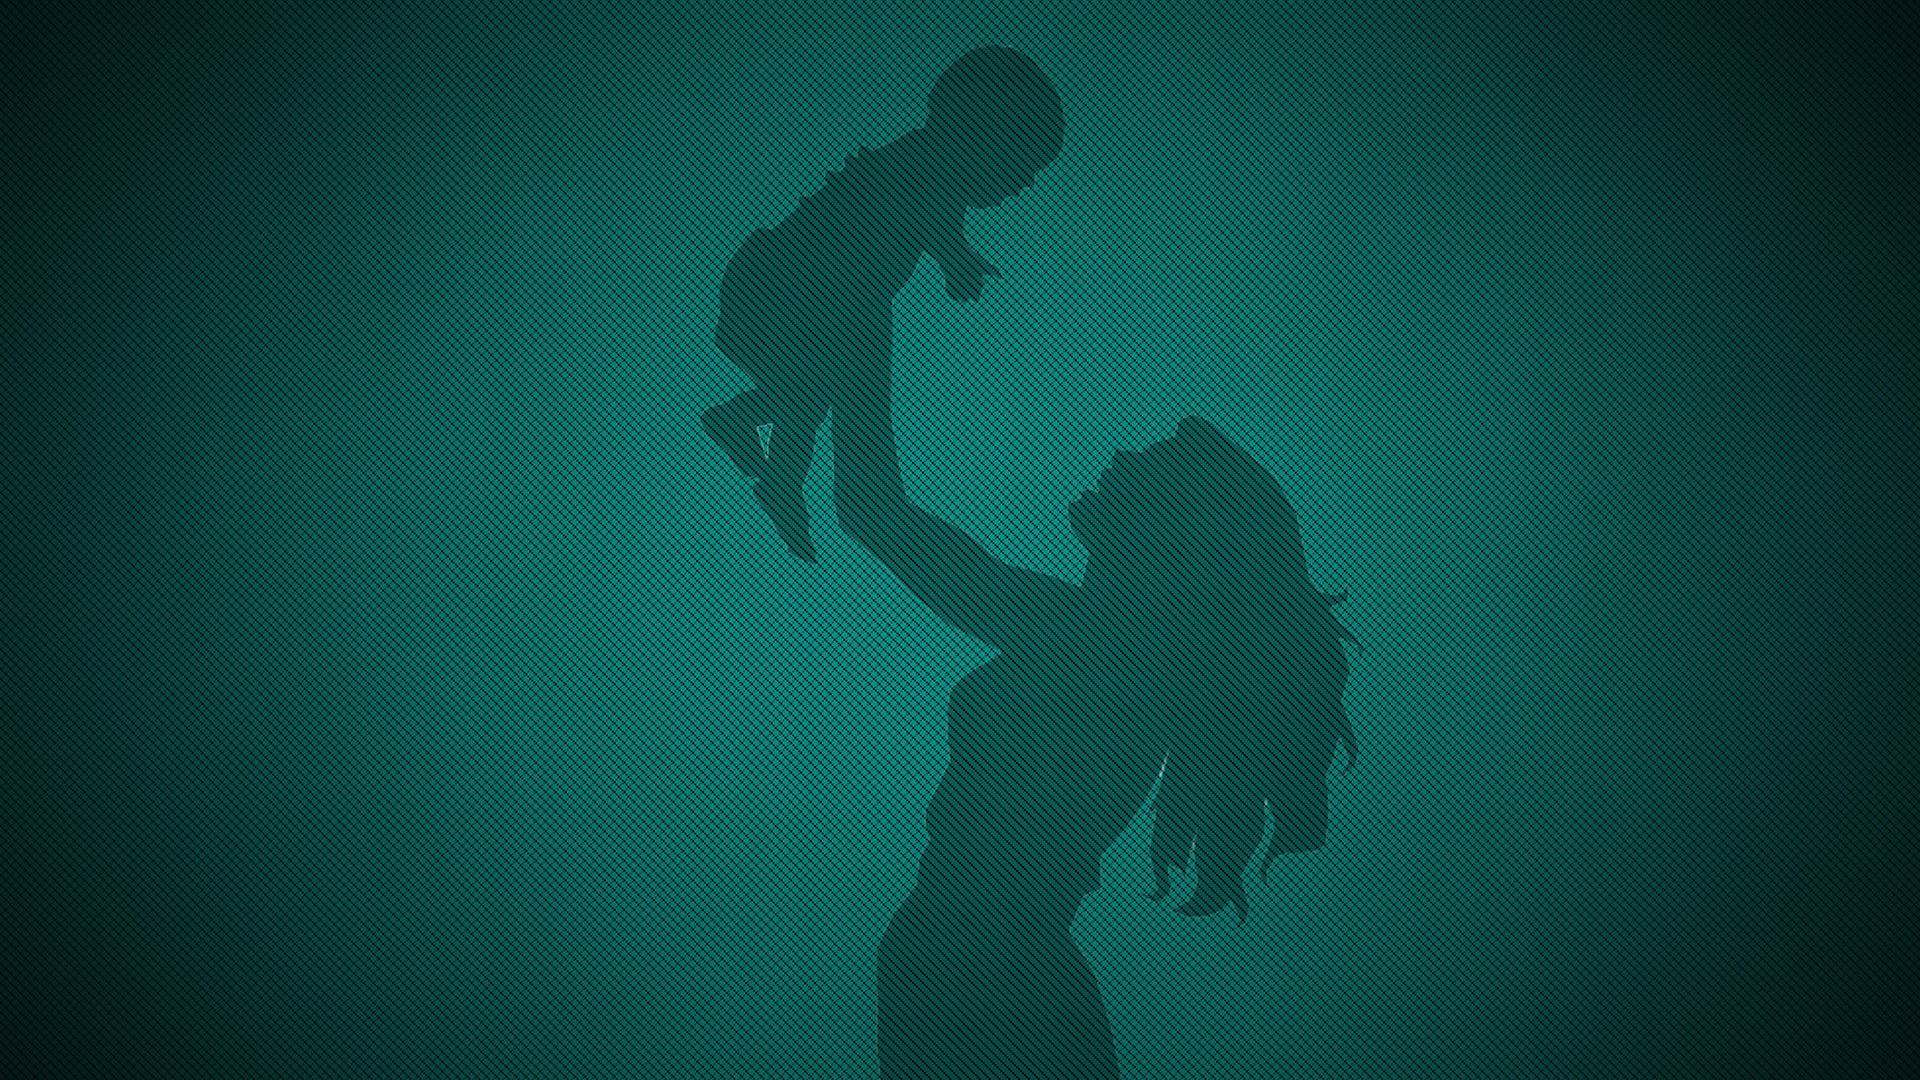 Mother Love Baby Wallpaper : Happy Mothers Day - Wallpaper, High Definition, High Quality, Widescreen